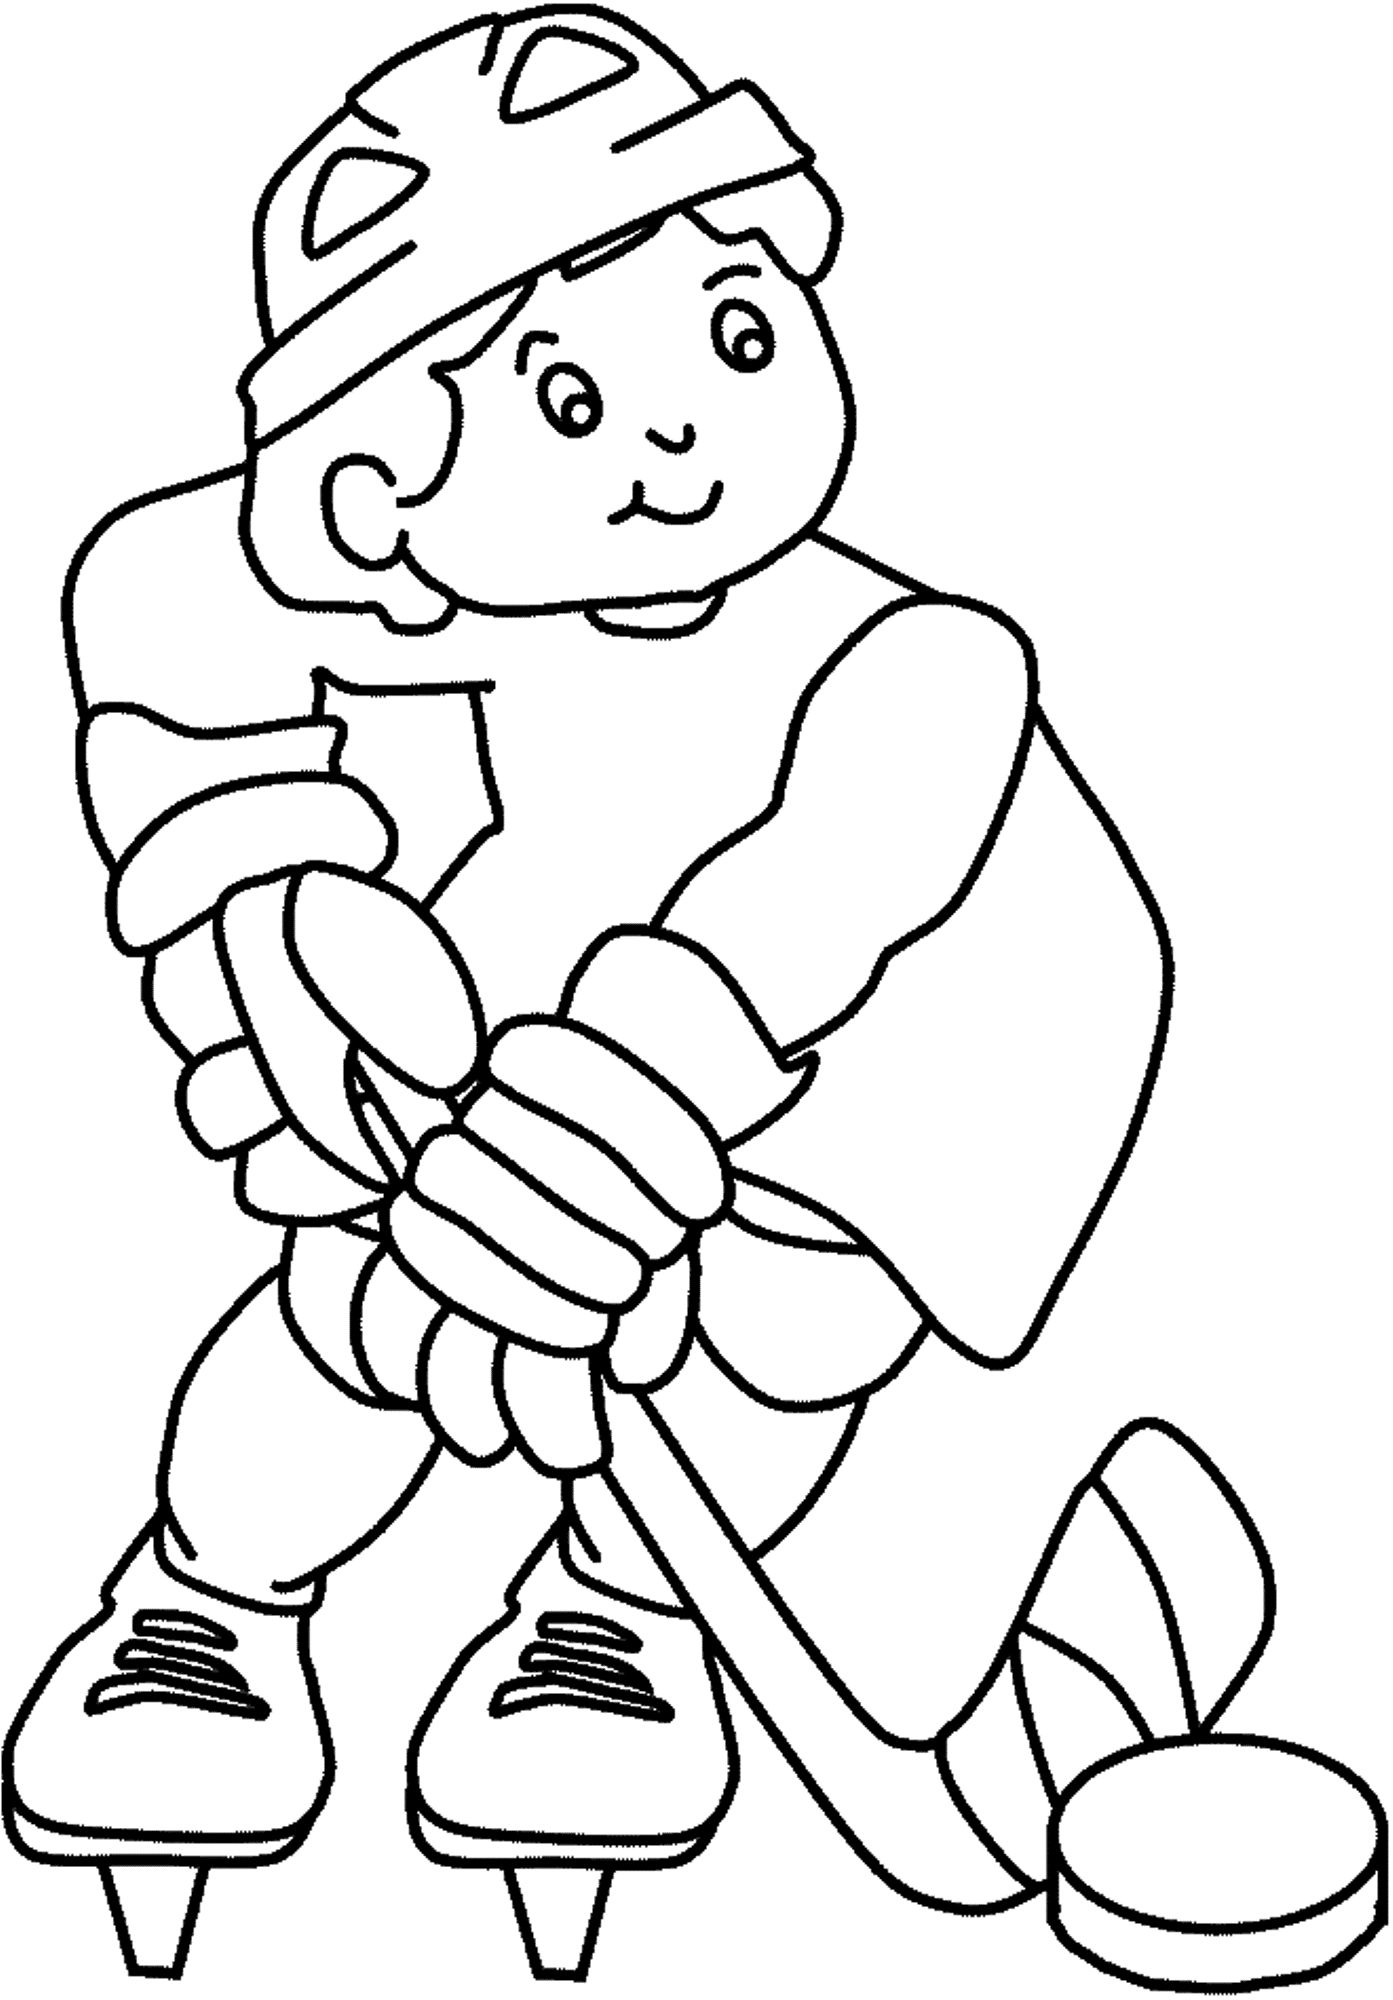 Hockey Coloring Pages For Kids Also Extraordinary Hockey